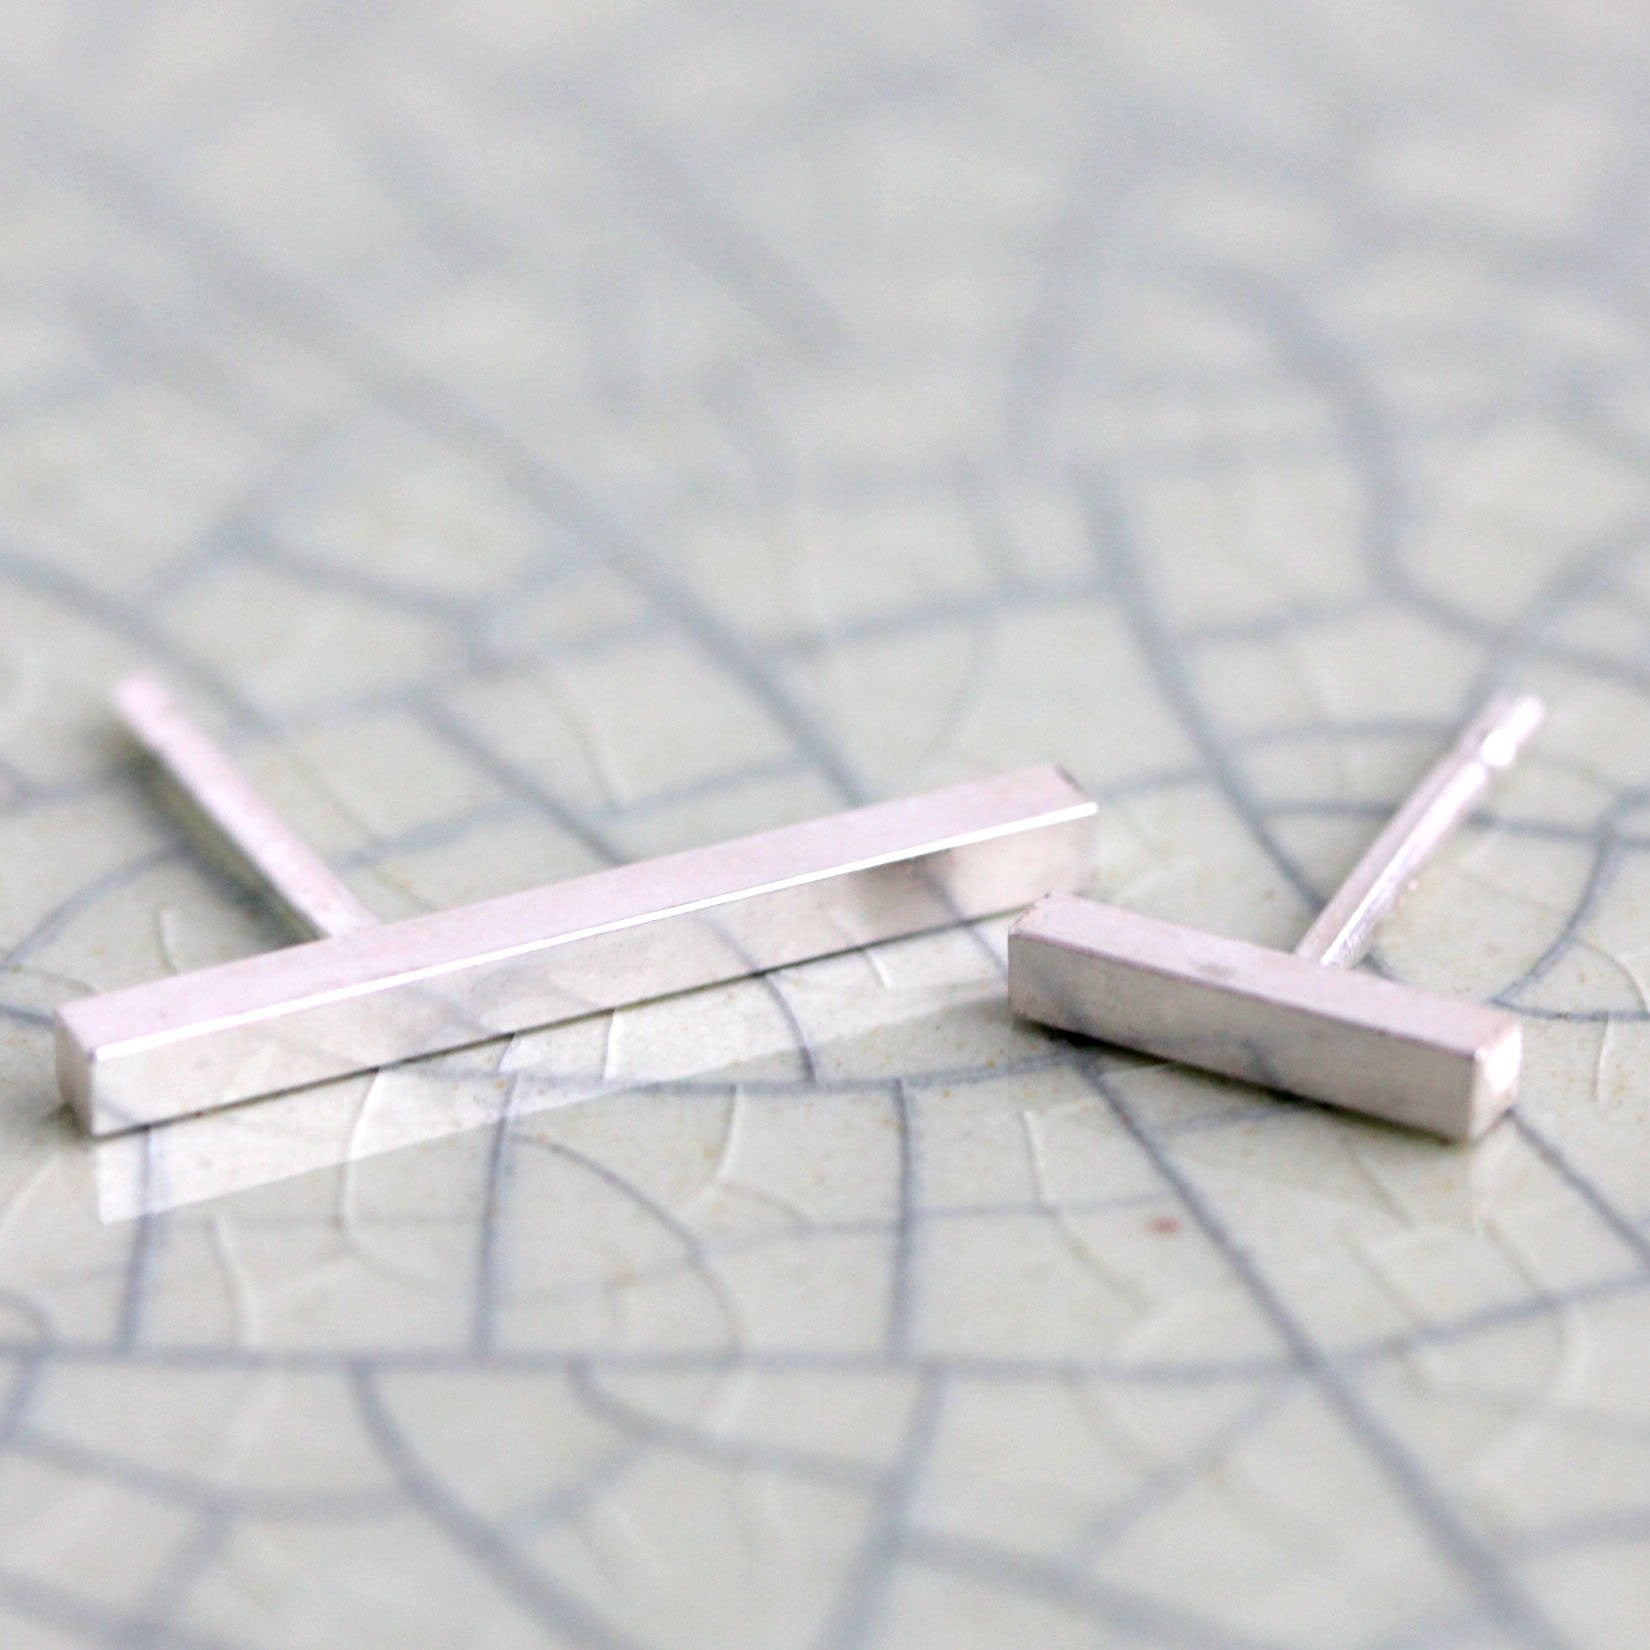 Asymmetrical Bar Post Earrings - Minimalist Mismatched Line Studs made from Recycled Silver